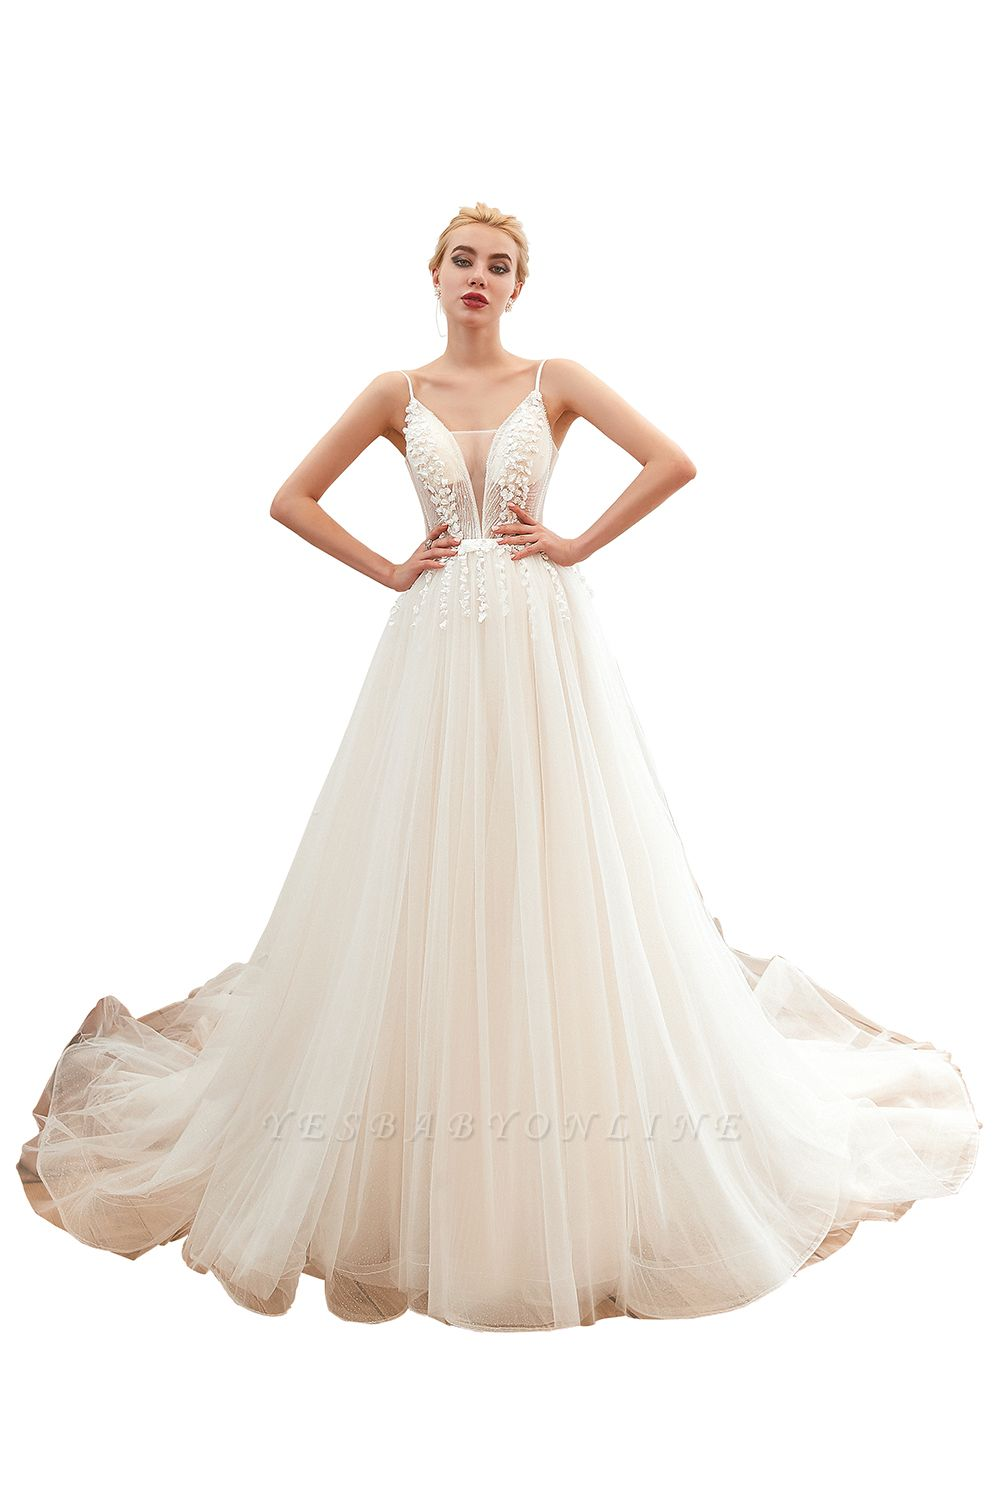 Elegant Spaghetti Straps Lace Up A-line Floor Length Lace Tulle Wedding Dresses